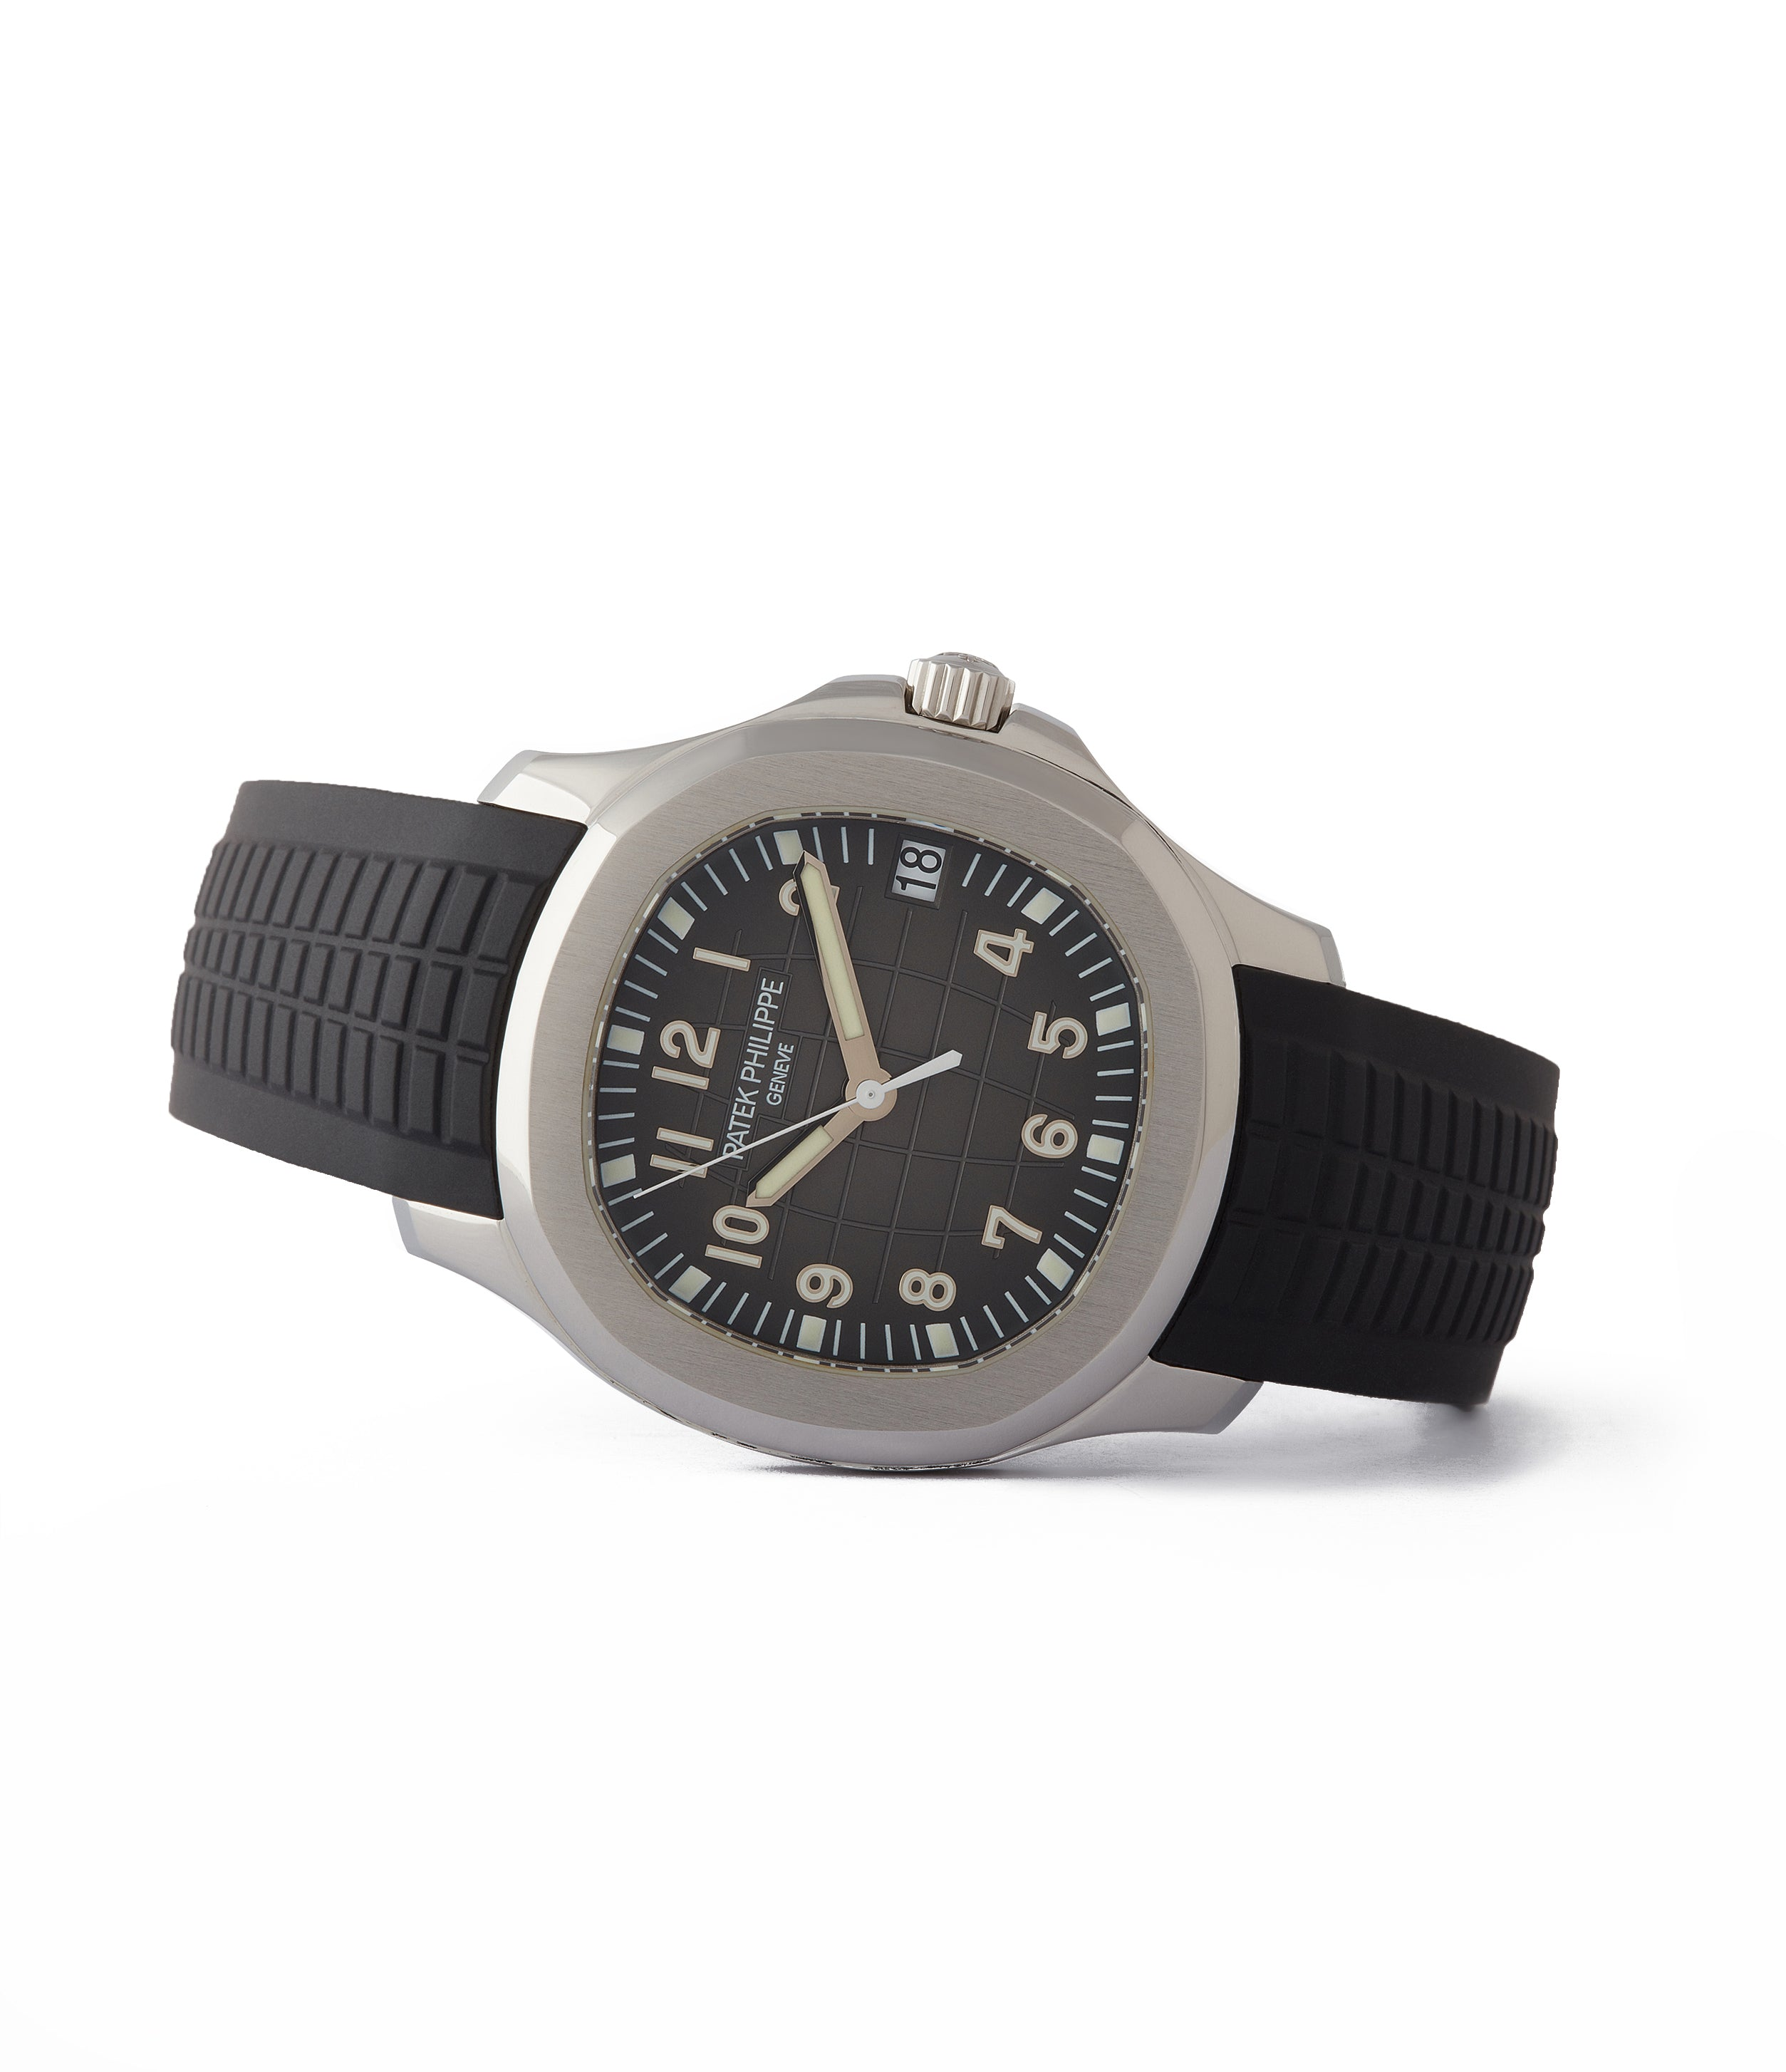 side-shot Patek Philippe Aquanaut 5165A-001 transitional steel sport watch for sale online at A Collected Man London UK specialist of rare watches